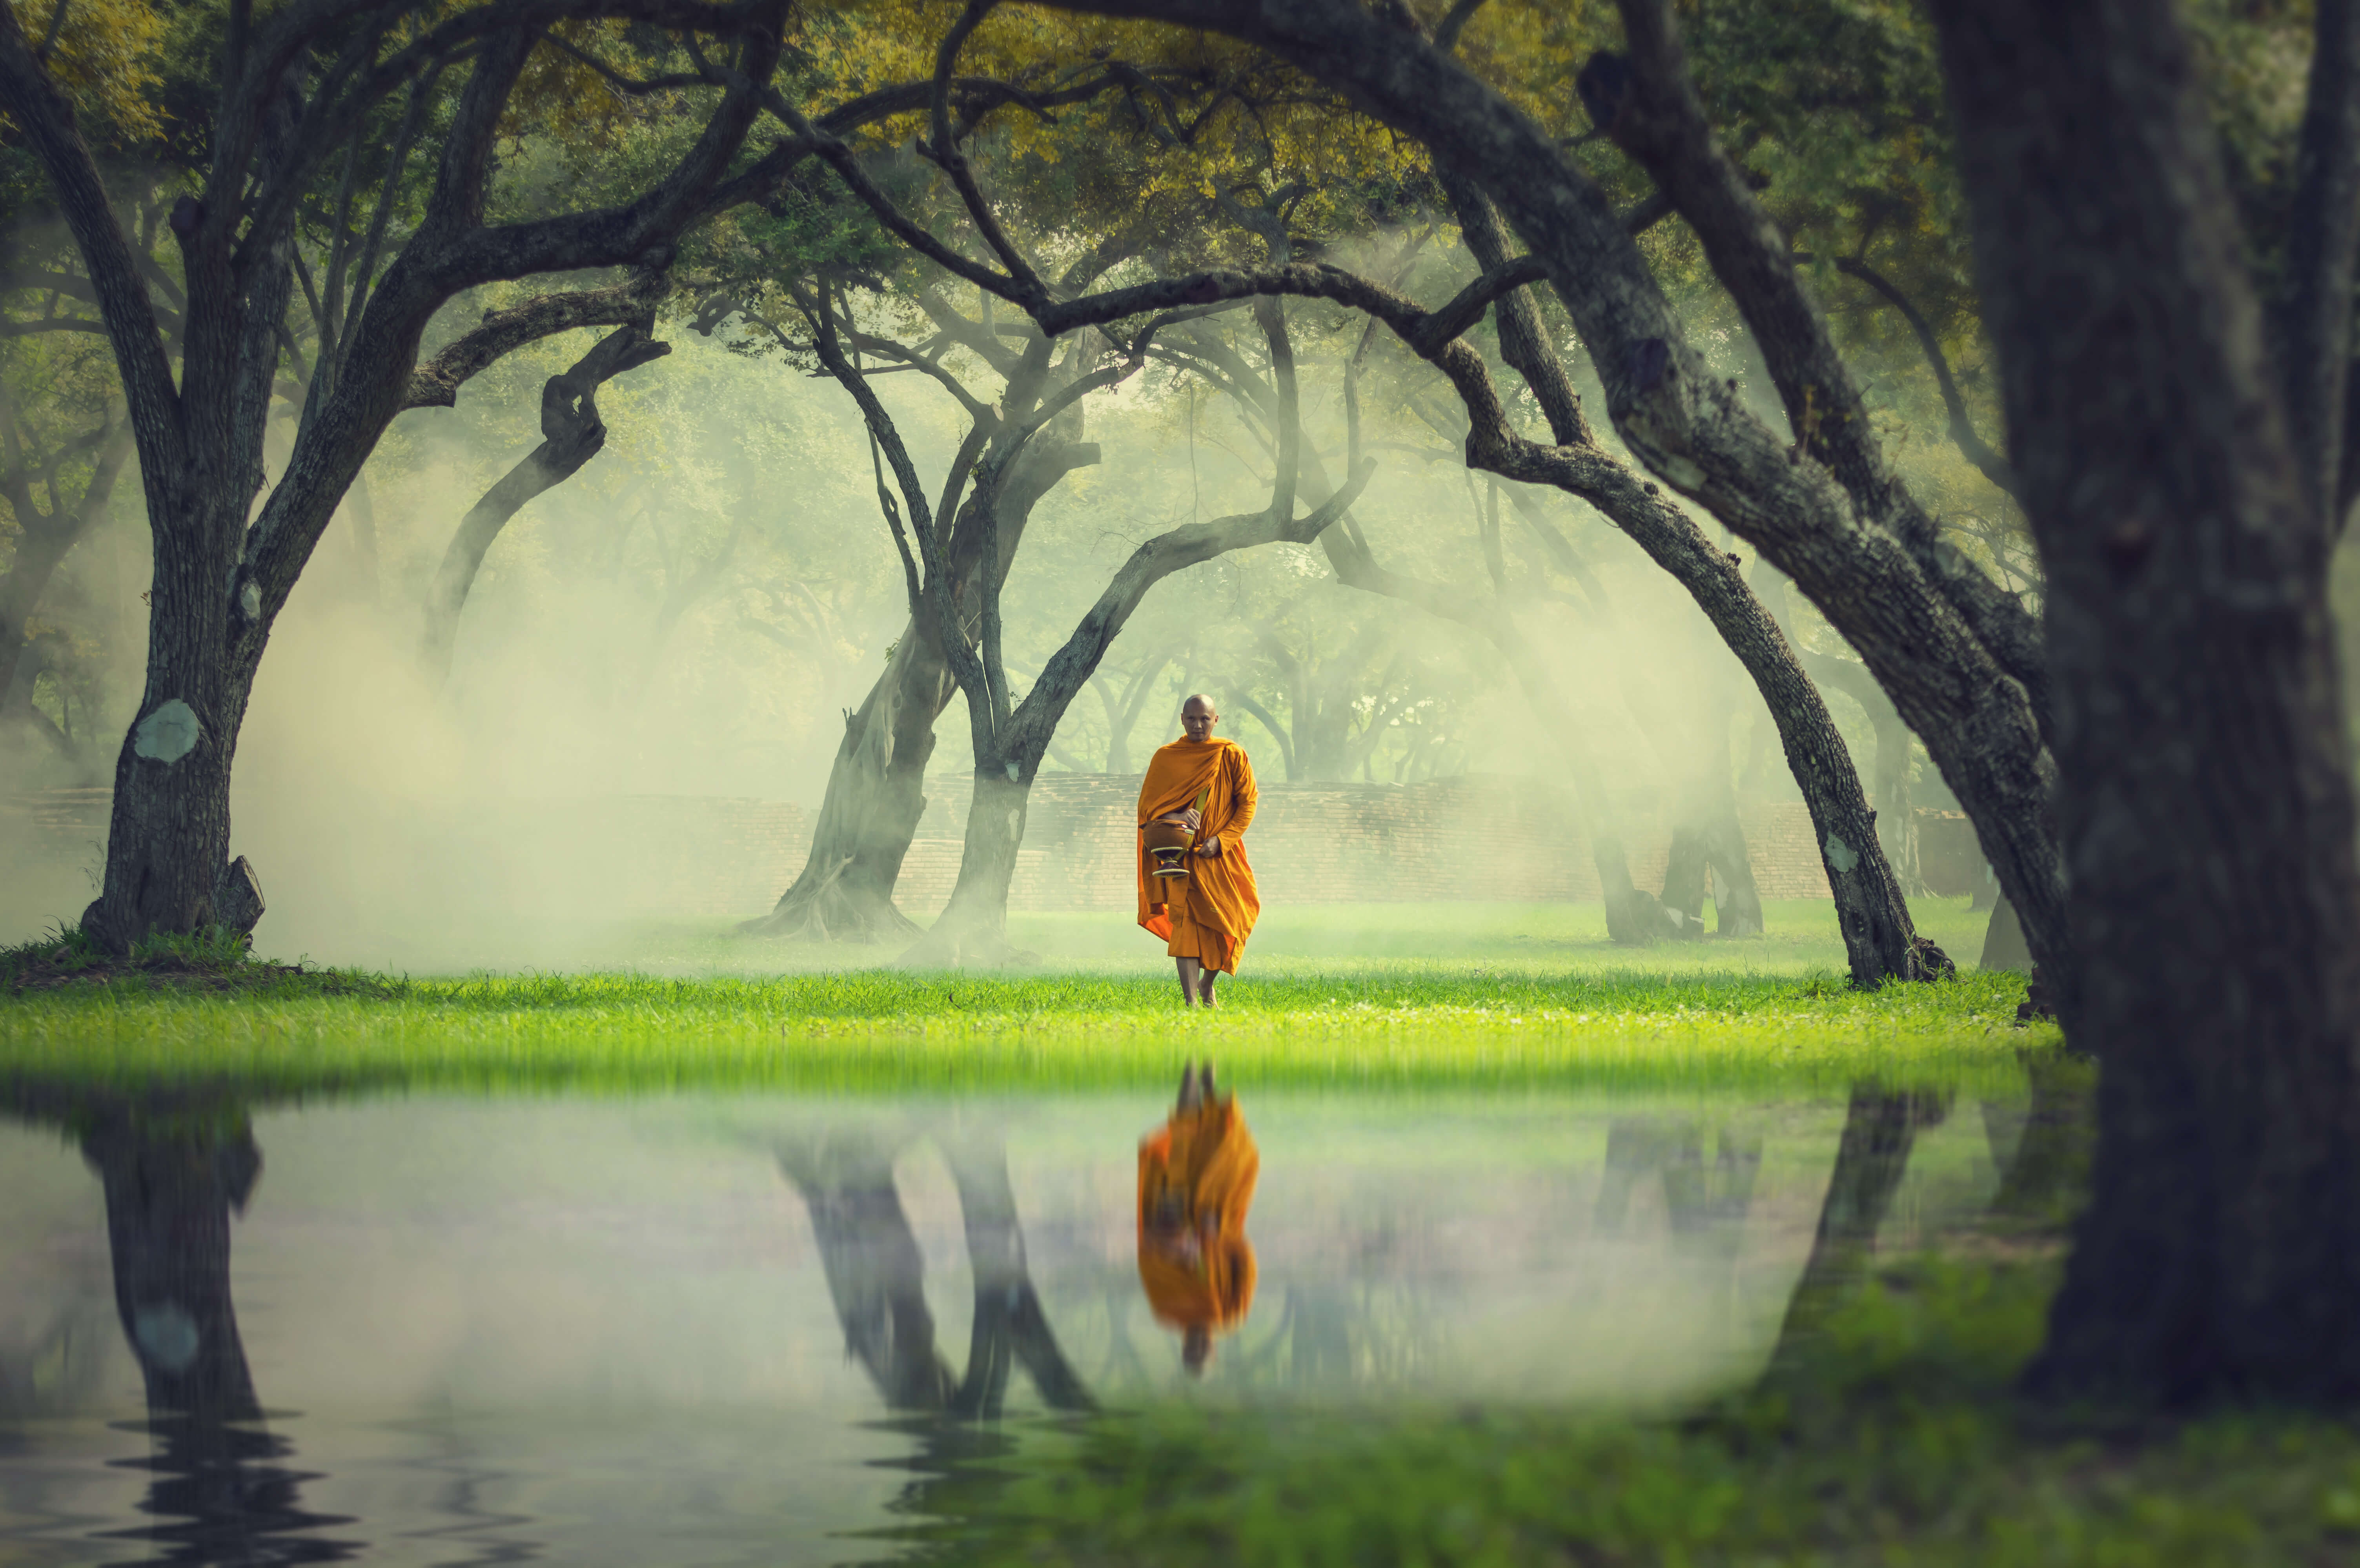 Monk in the Forest